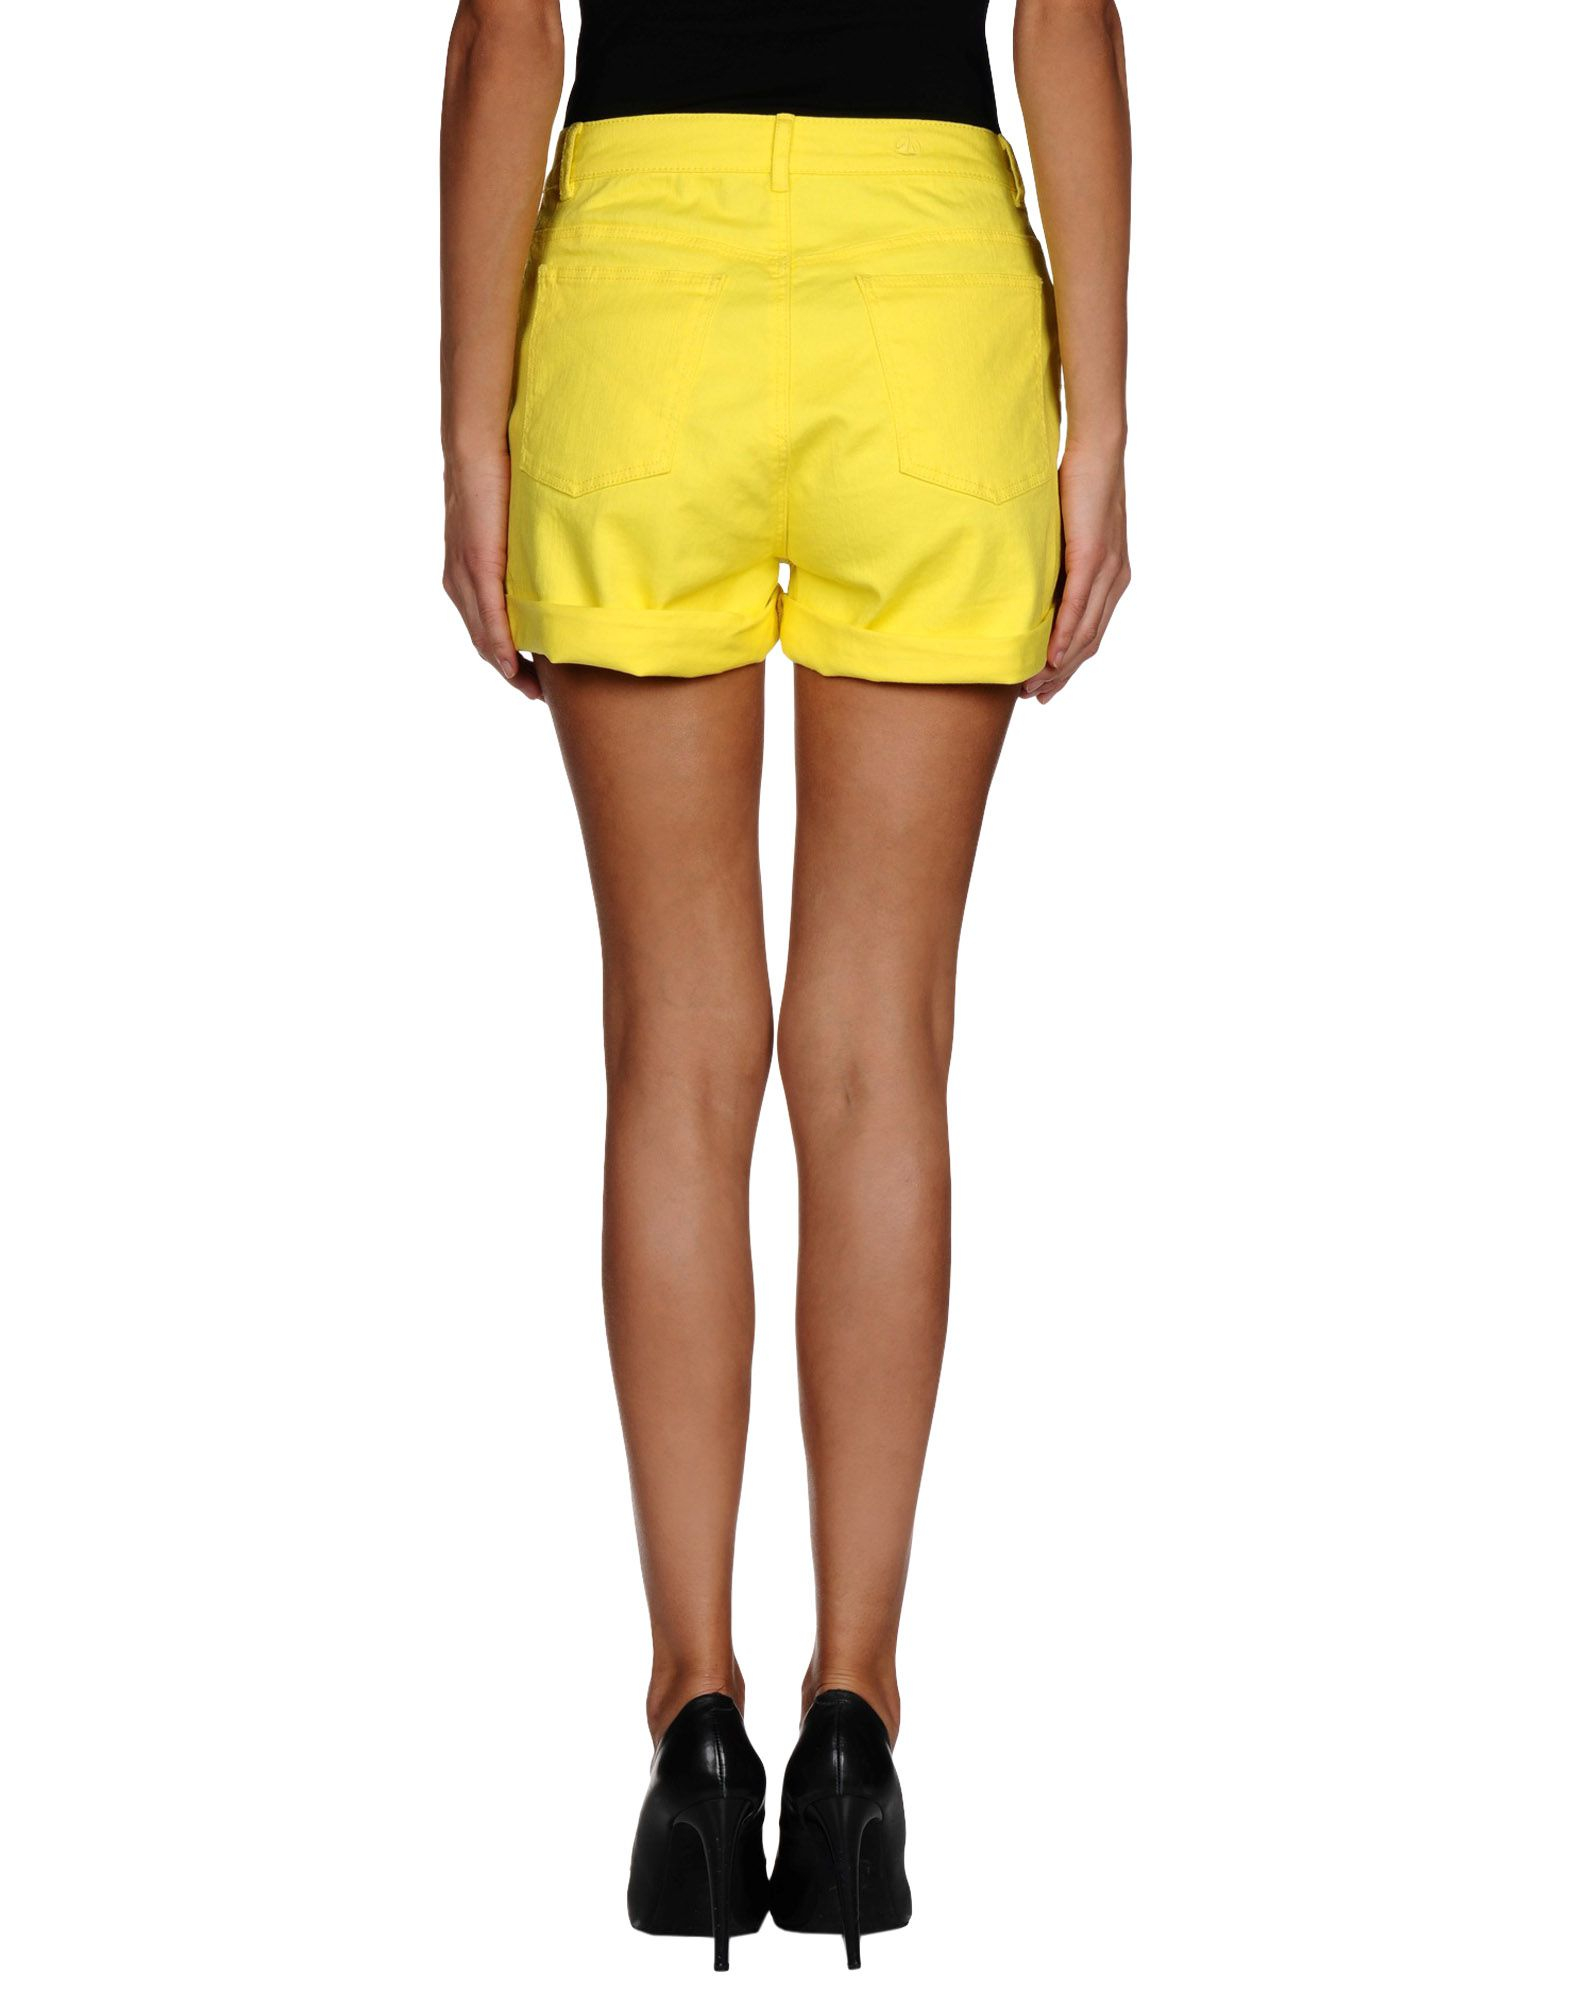 Yellow Lace Top and White Denim Shorts [ ] Reply Amanda July 2, at am. Beautiful outfit! I am so inspired with these looks. These are the best ways to style up with denim shorts. I can't wait to try this. Thanks a lot for sharing. Reply Megan June 22, at pm.